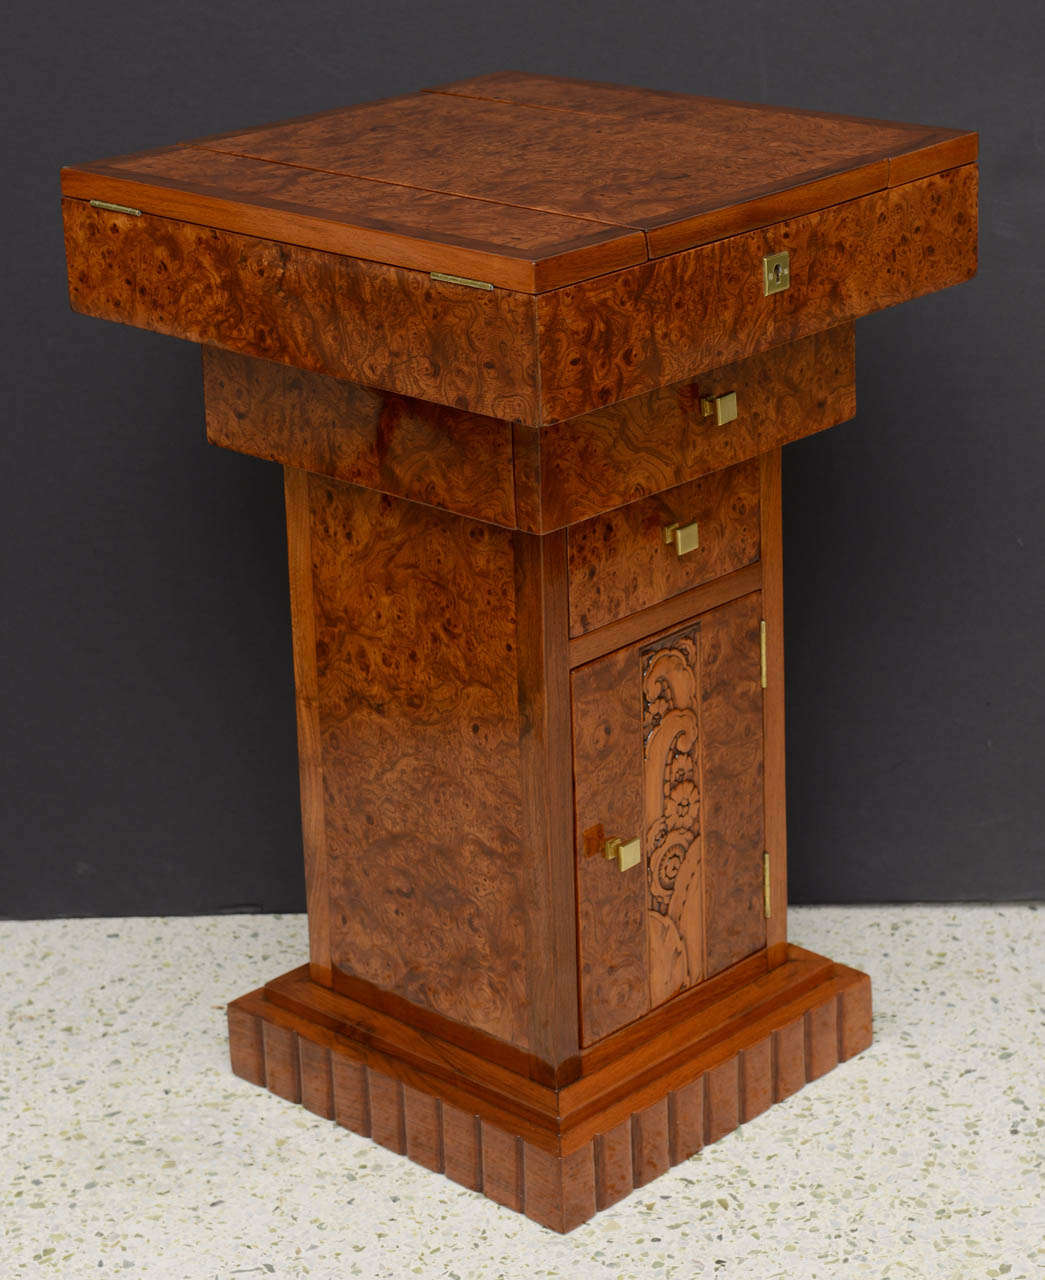 French Art Deco Burled Walnut and Walnut Work Table In Excellent Condition For Sale In Miami, FL